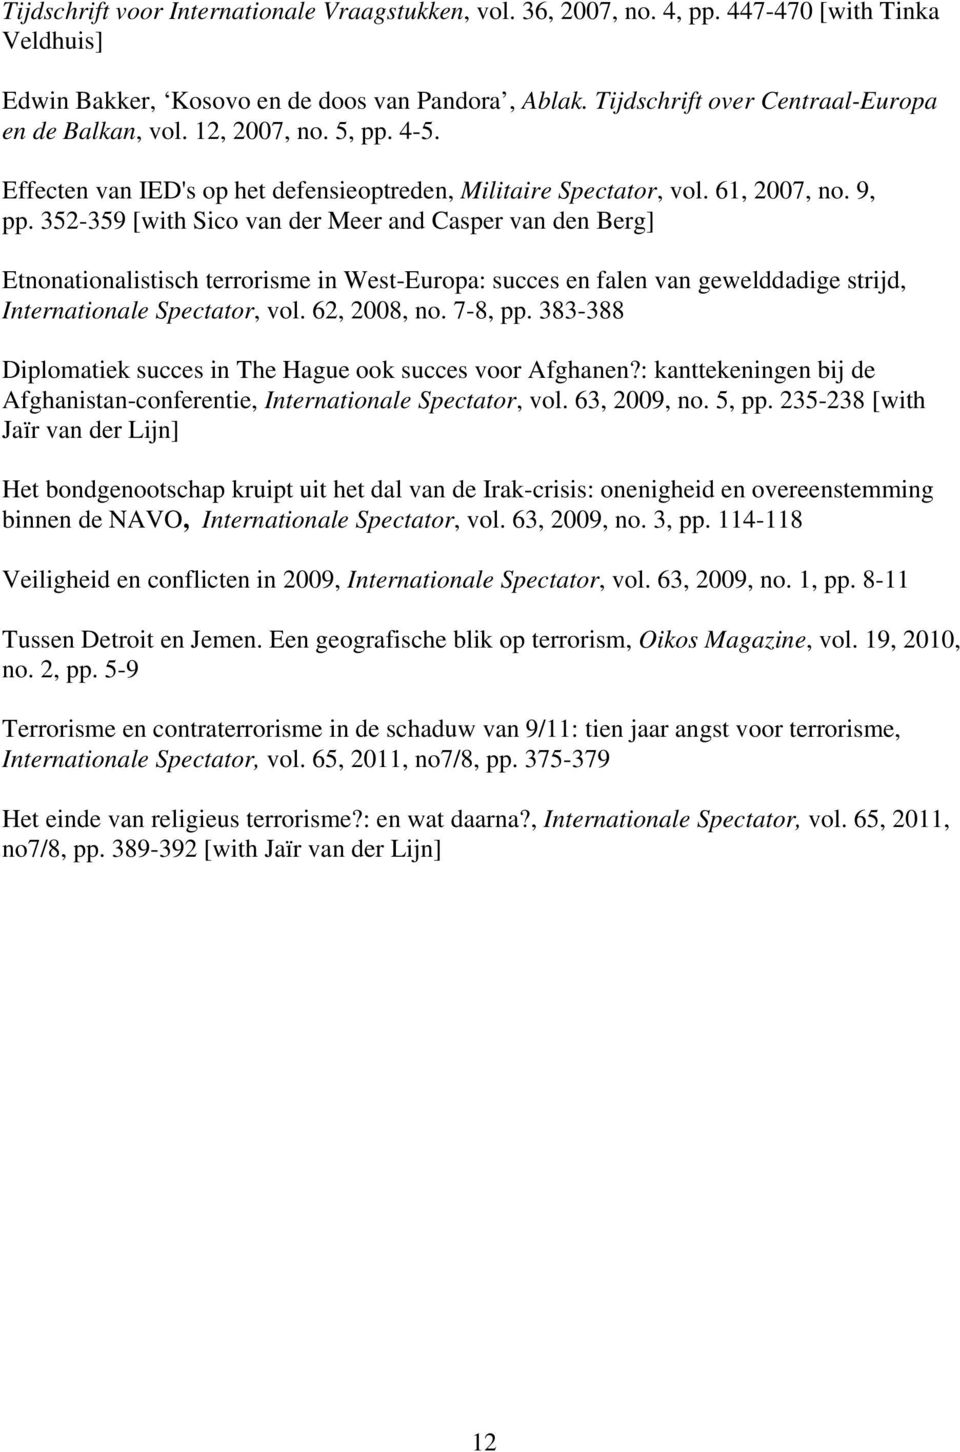 352-359 [with Sico van der Meer and Casper van den Berg] Etnonationalistisch terrorisme in West-Europa: succes en falen van gewelddadige strijd, Internationale Spectator, vol. 62, 2008, no. 7-8, pp.